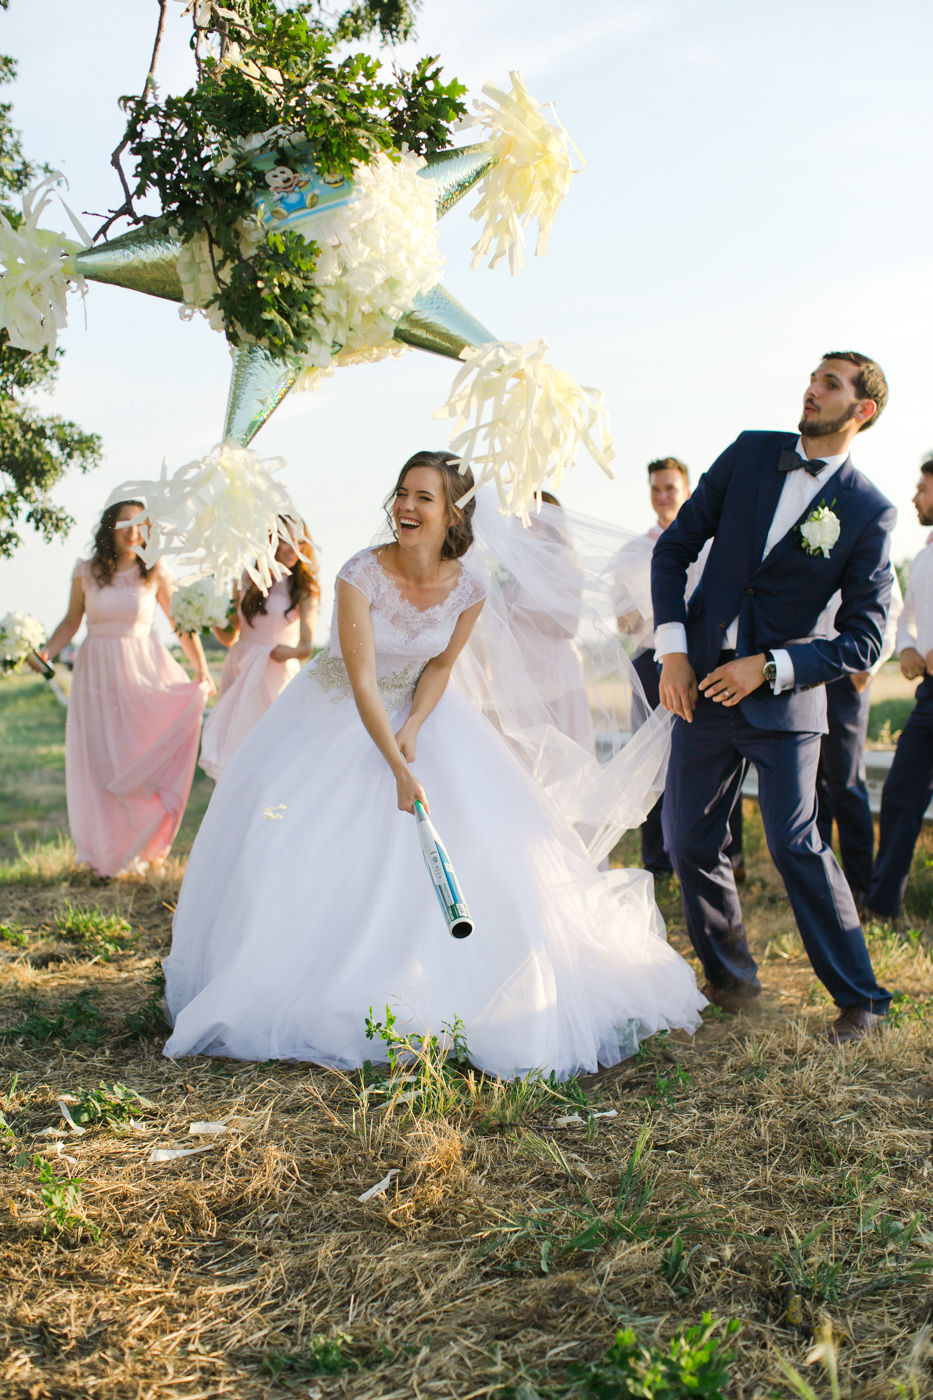 bride-groom-wedding-pinata-fun-west-sacramento